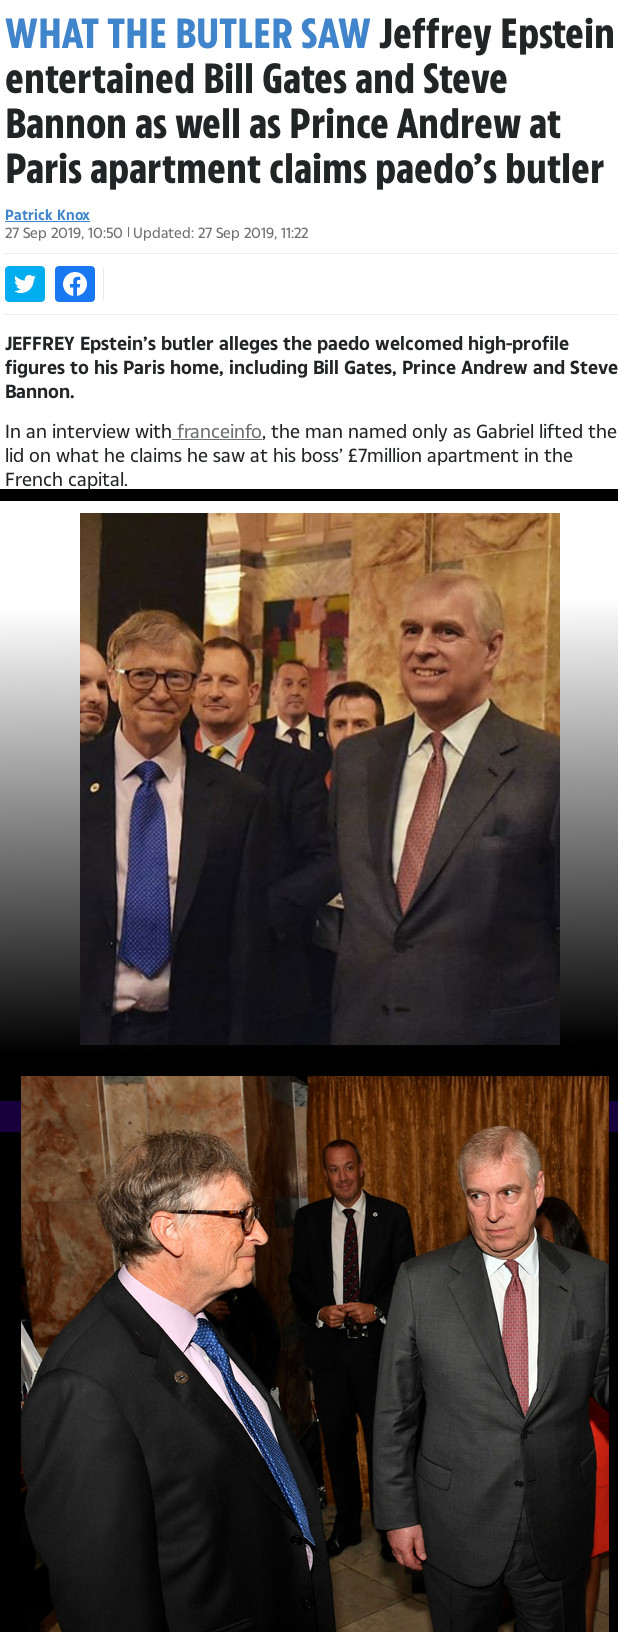 Bill Gates and Prince Andrew